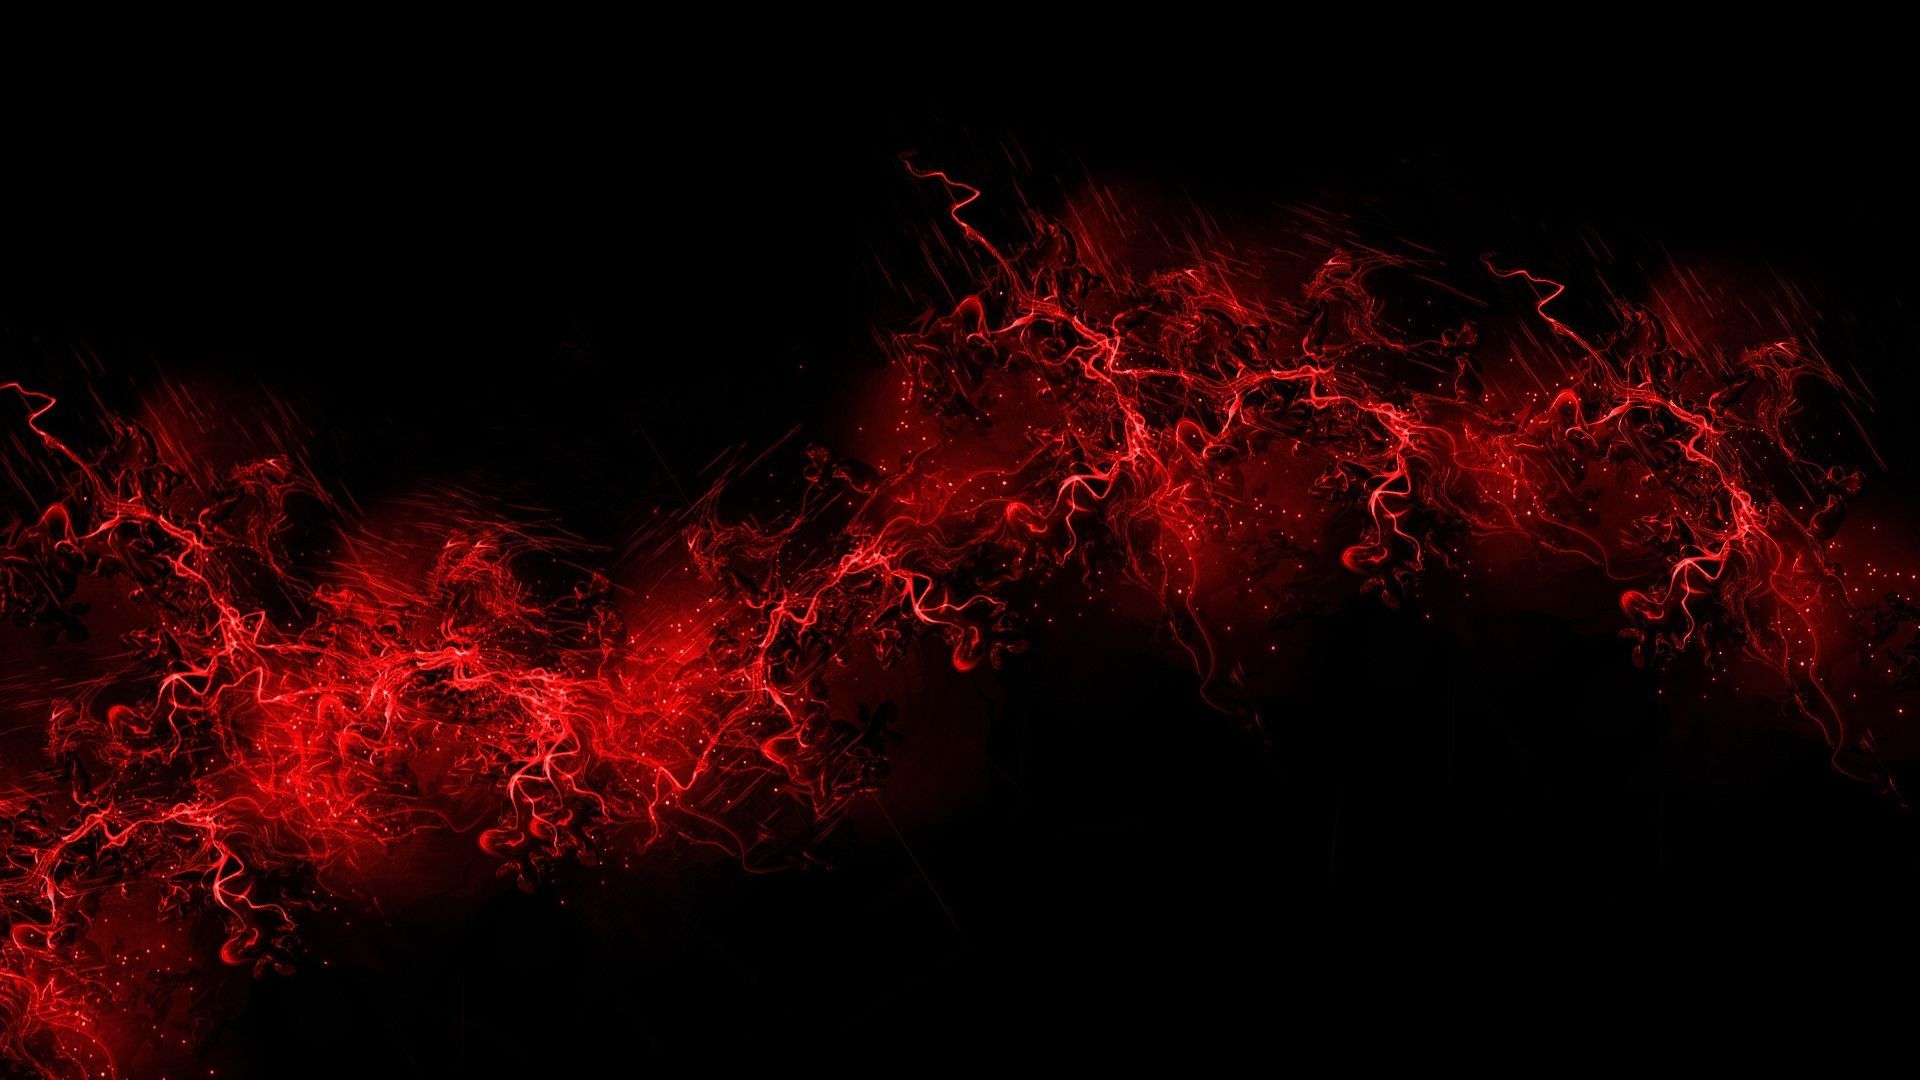 Hd Black And Red Wallpapers Group 89